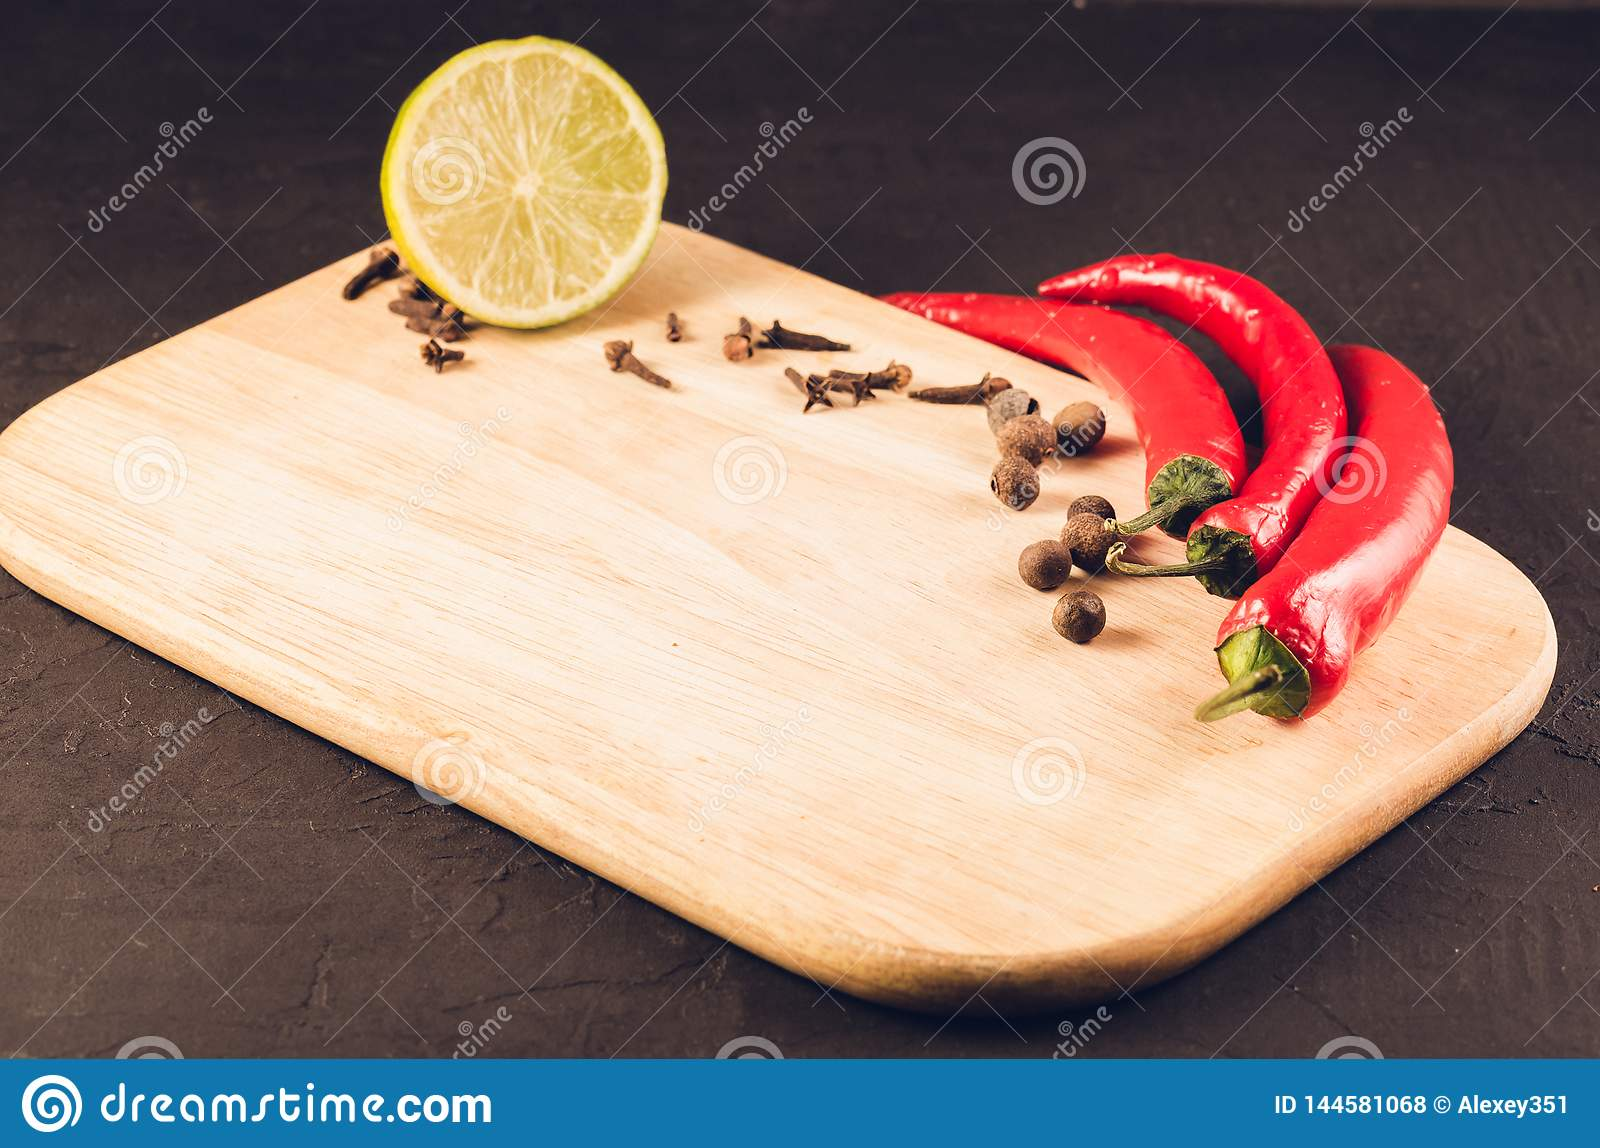 Fresh delicious ingredients and empty cutting board/Fresh delicious ingredients and empty cutting board on a dark background